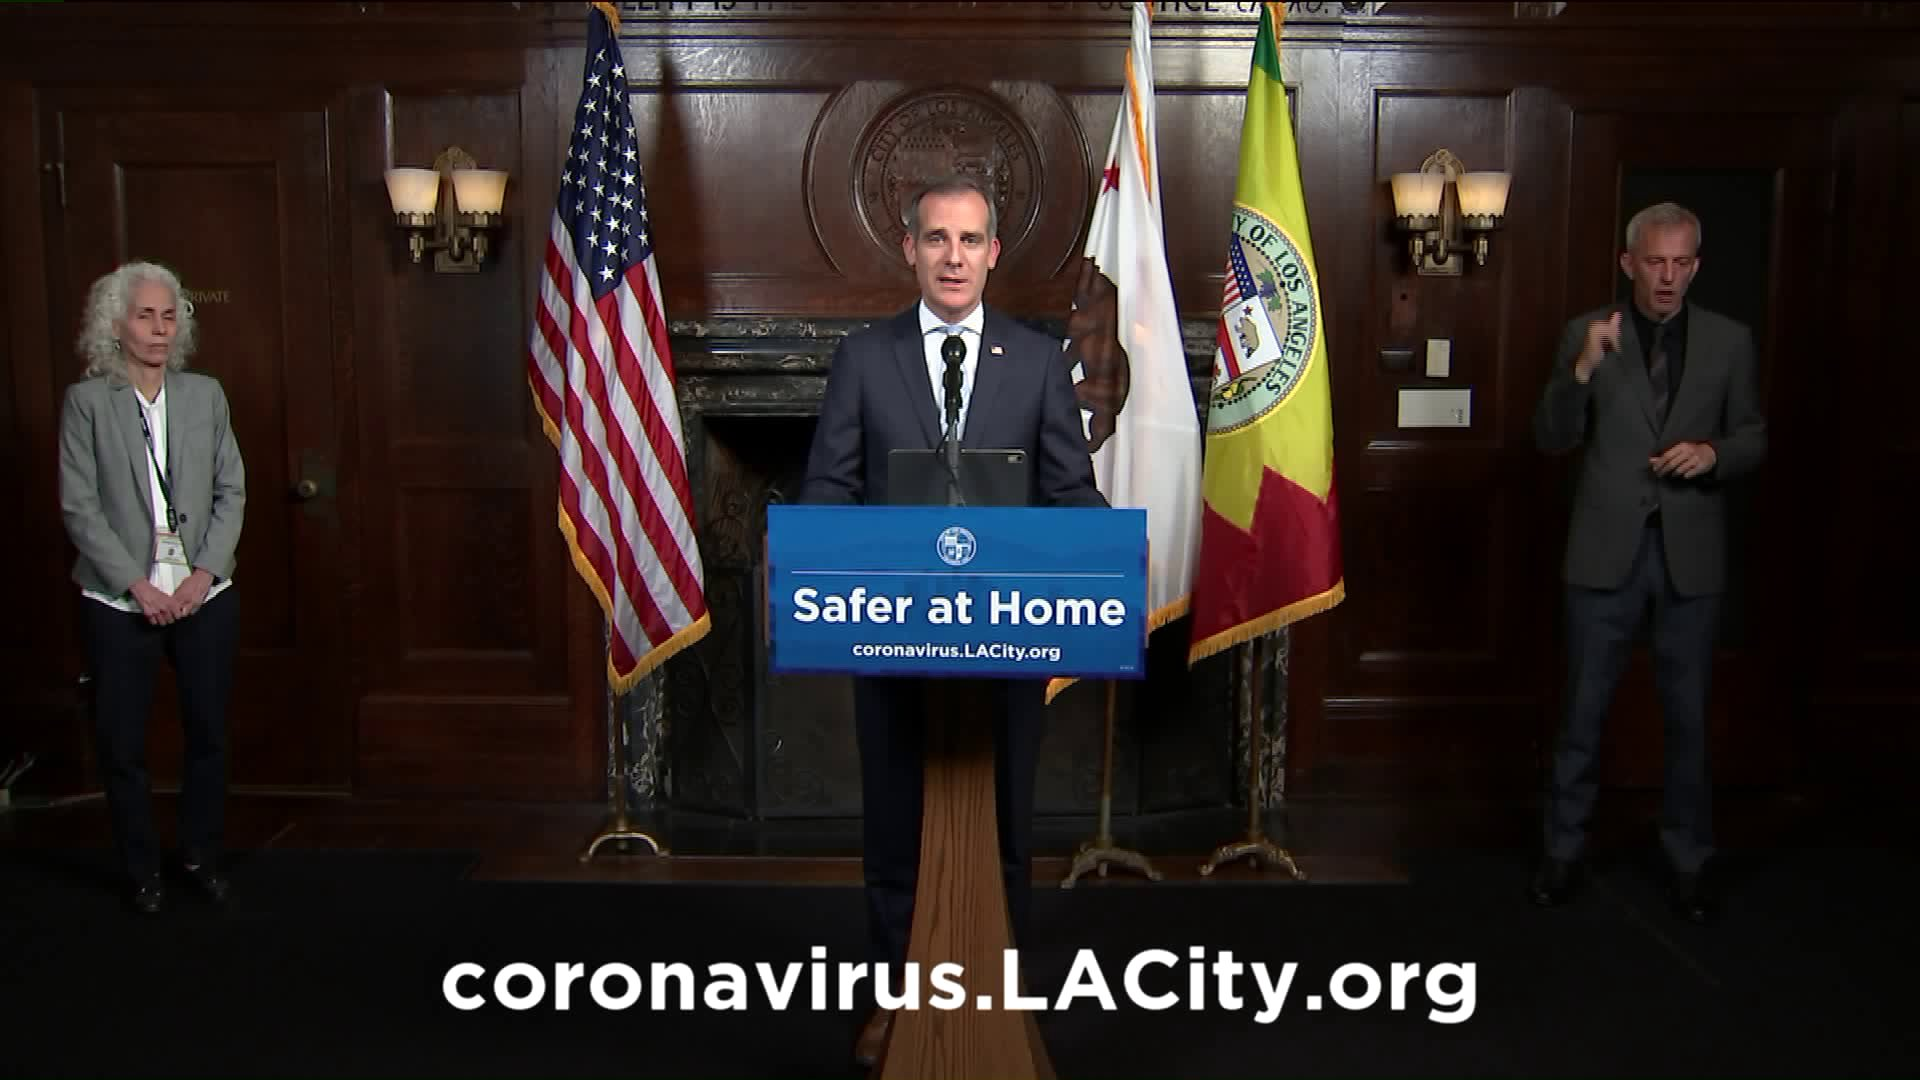 L.A. Mayor Eric Garcetti is seen during a news conference on April 2, 2020, with Dr. Barbara Ferrer, Director of the L.A. County Department of Public Health to his left.